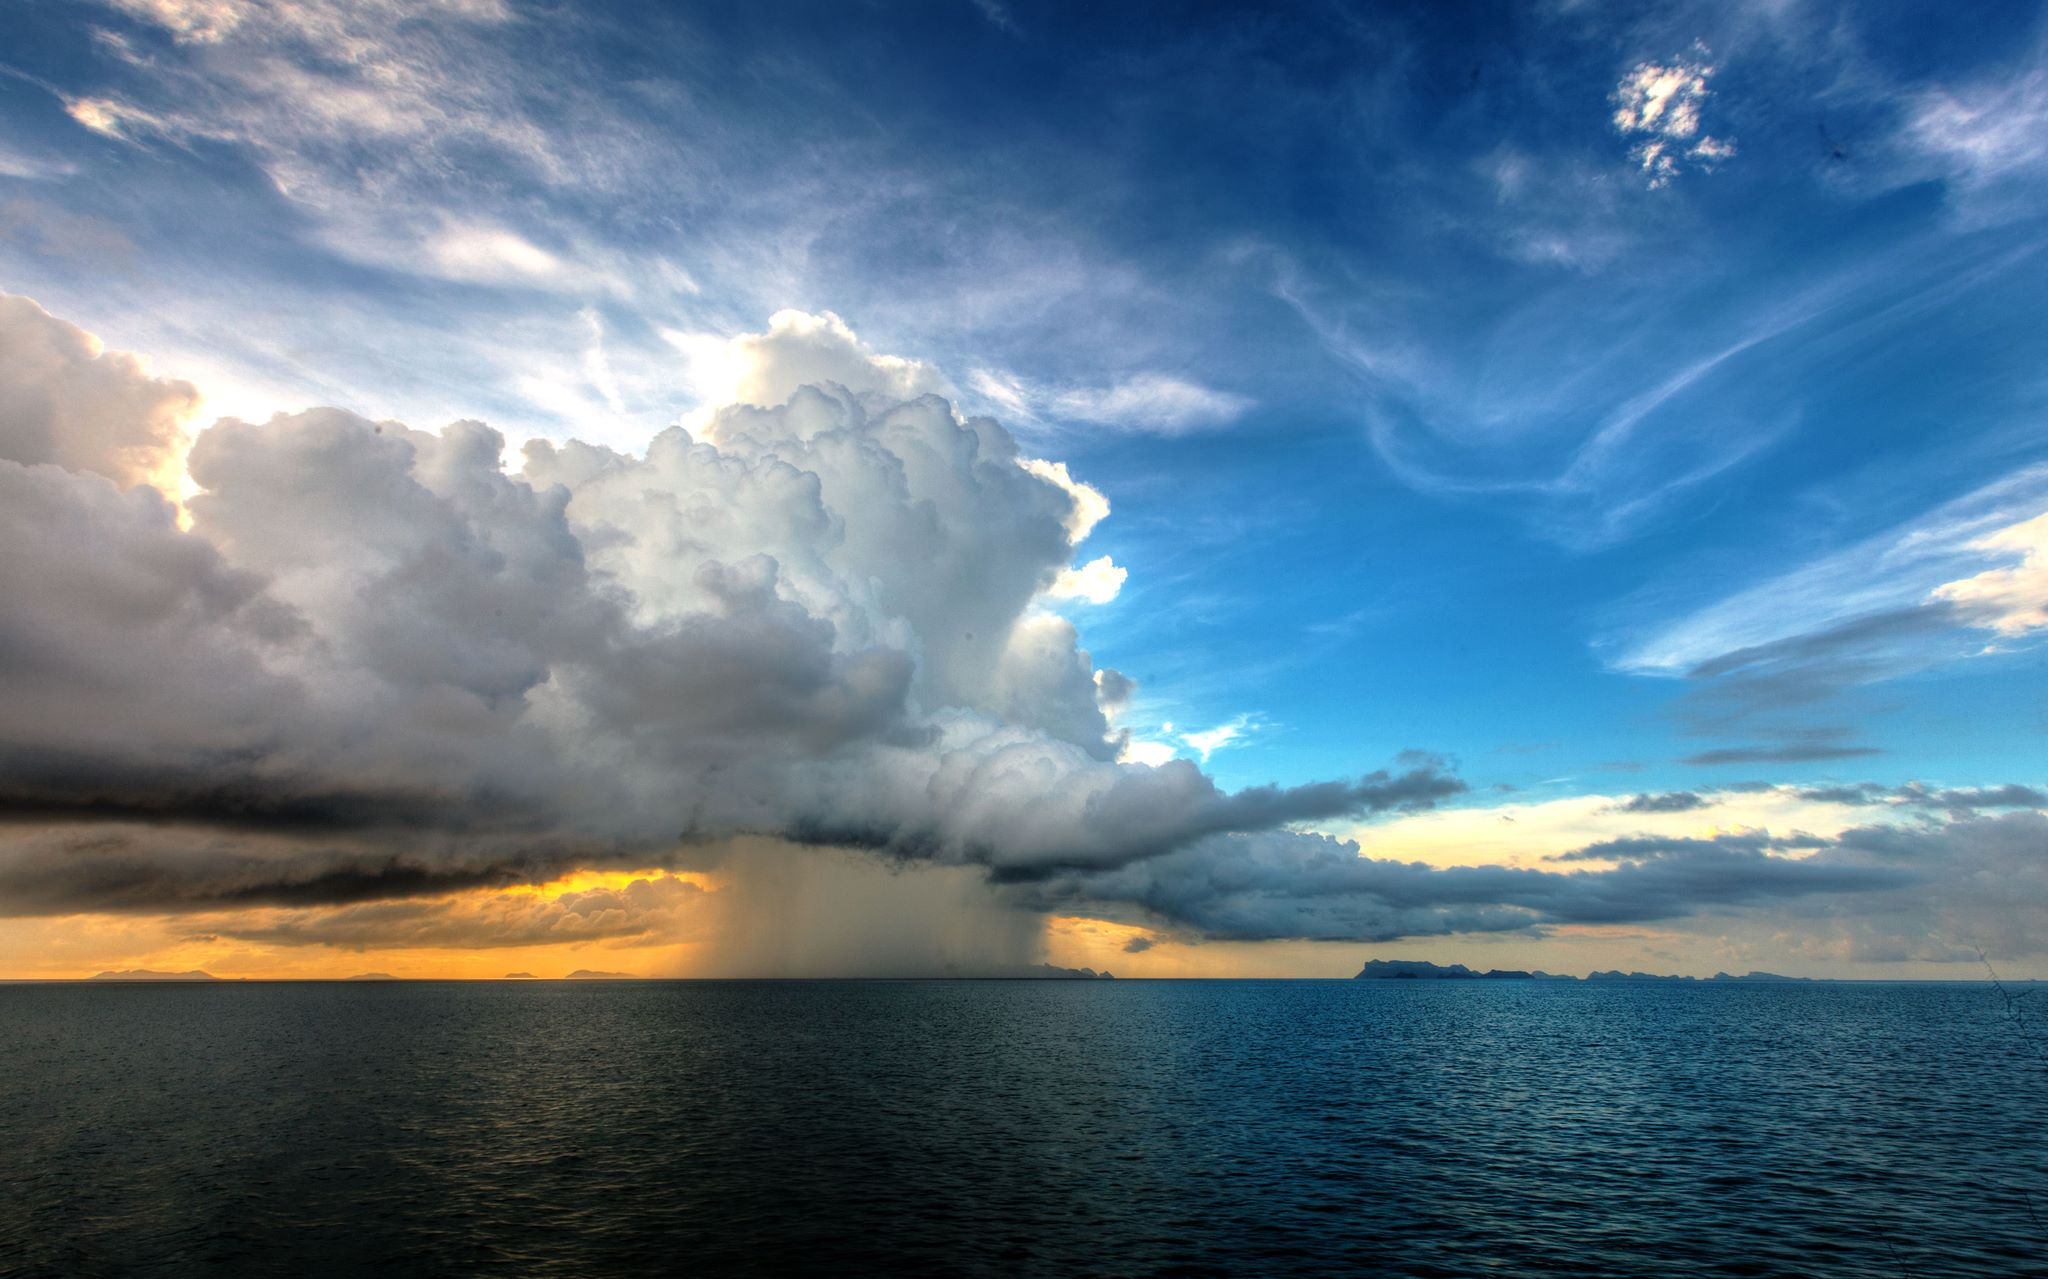 On the way back from a trip with a storm over Ang Thong Marine Park at sunset.